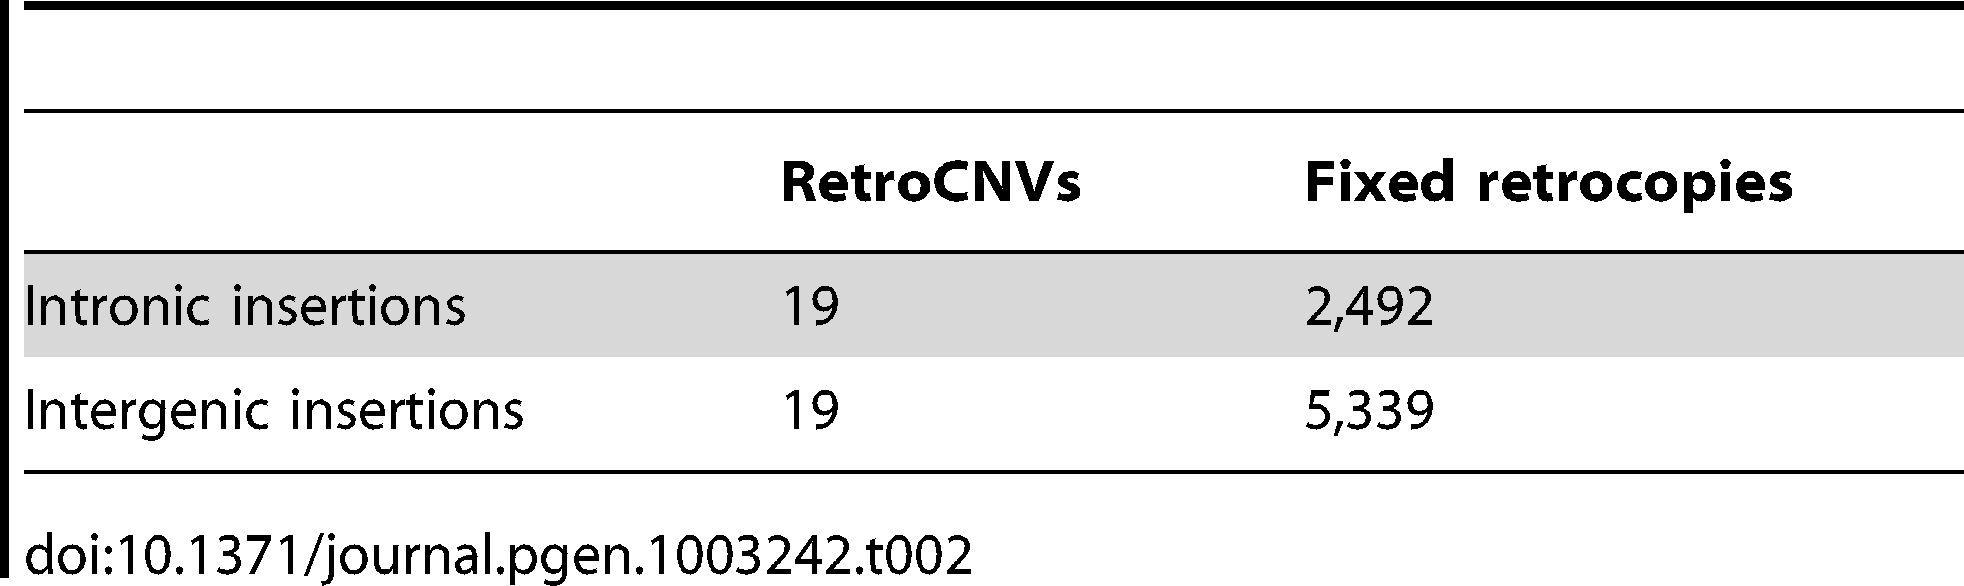 RetroCNVs versus fixed retrocopies inserted in intronic versus intergenic sequence.